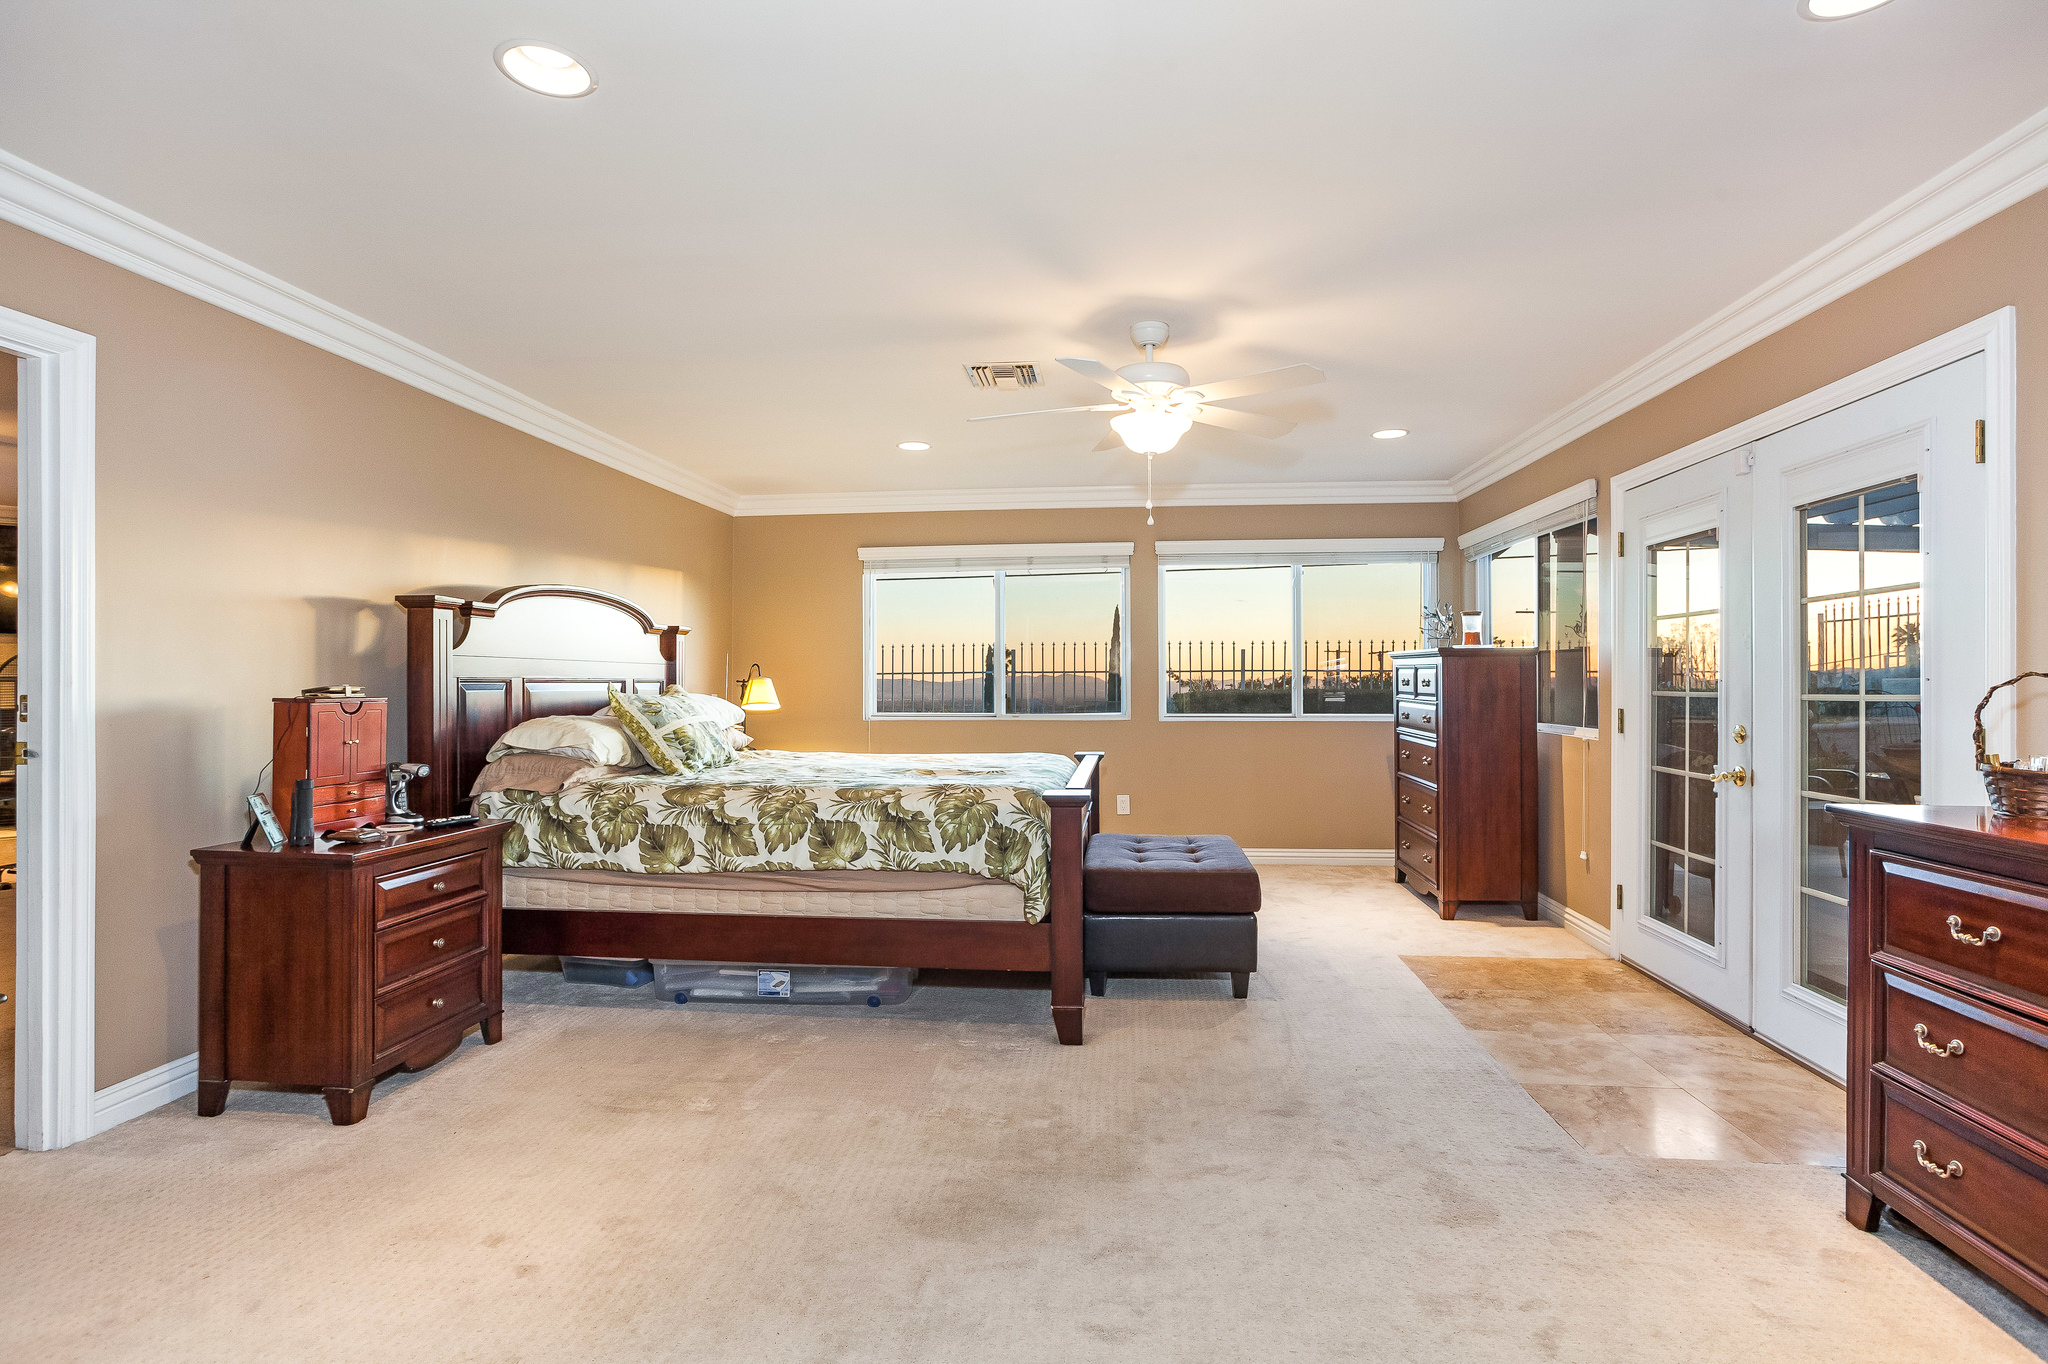 view of master bedroom with windows on far wall